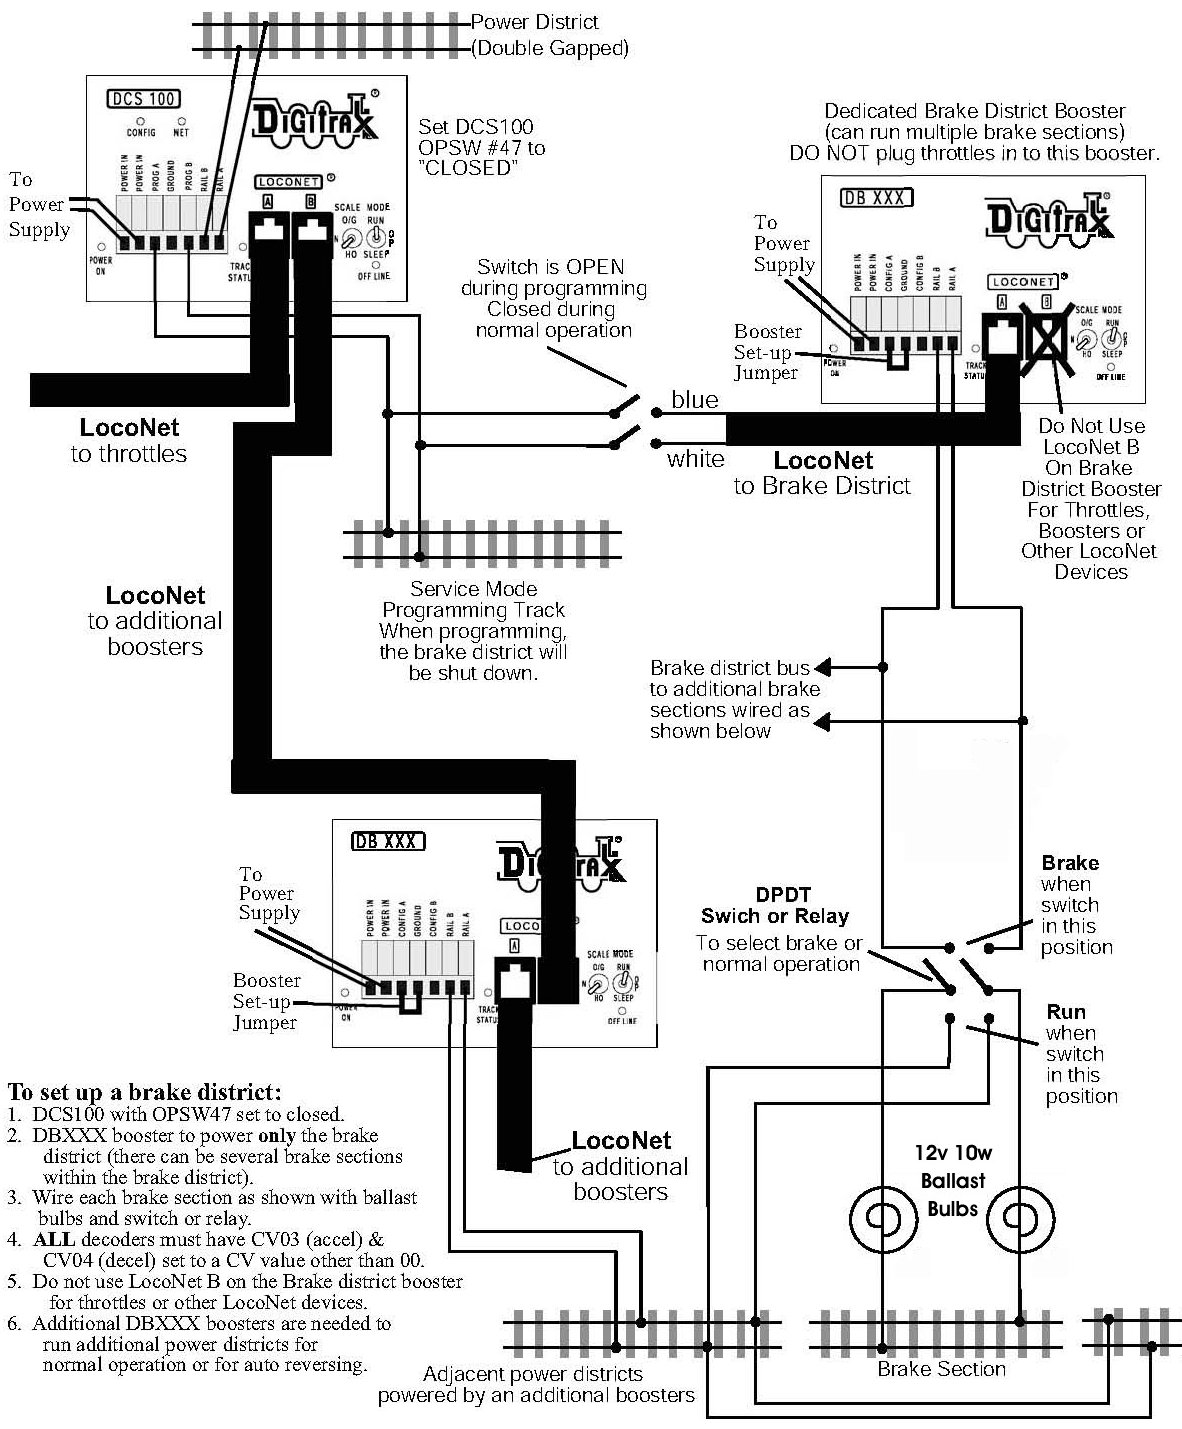 dcc wiring diagram vectra radio for dummies and fuse box